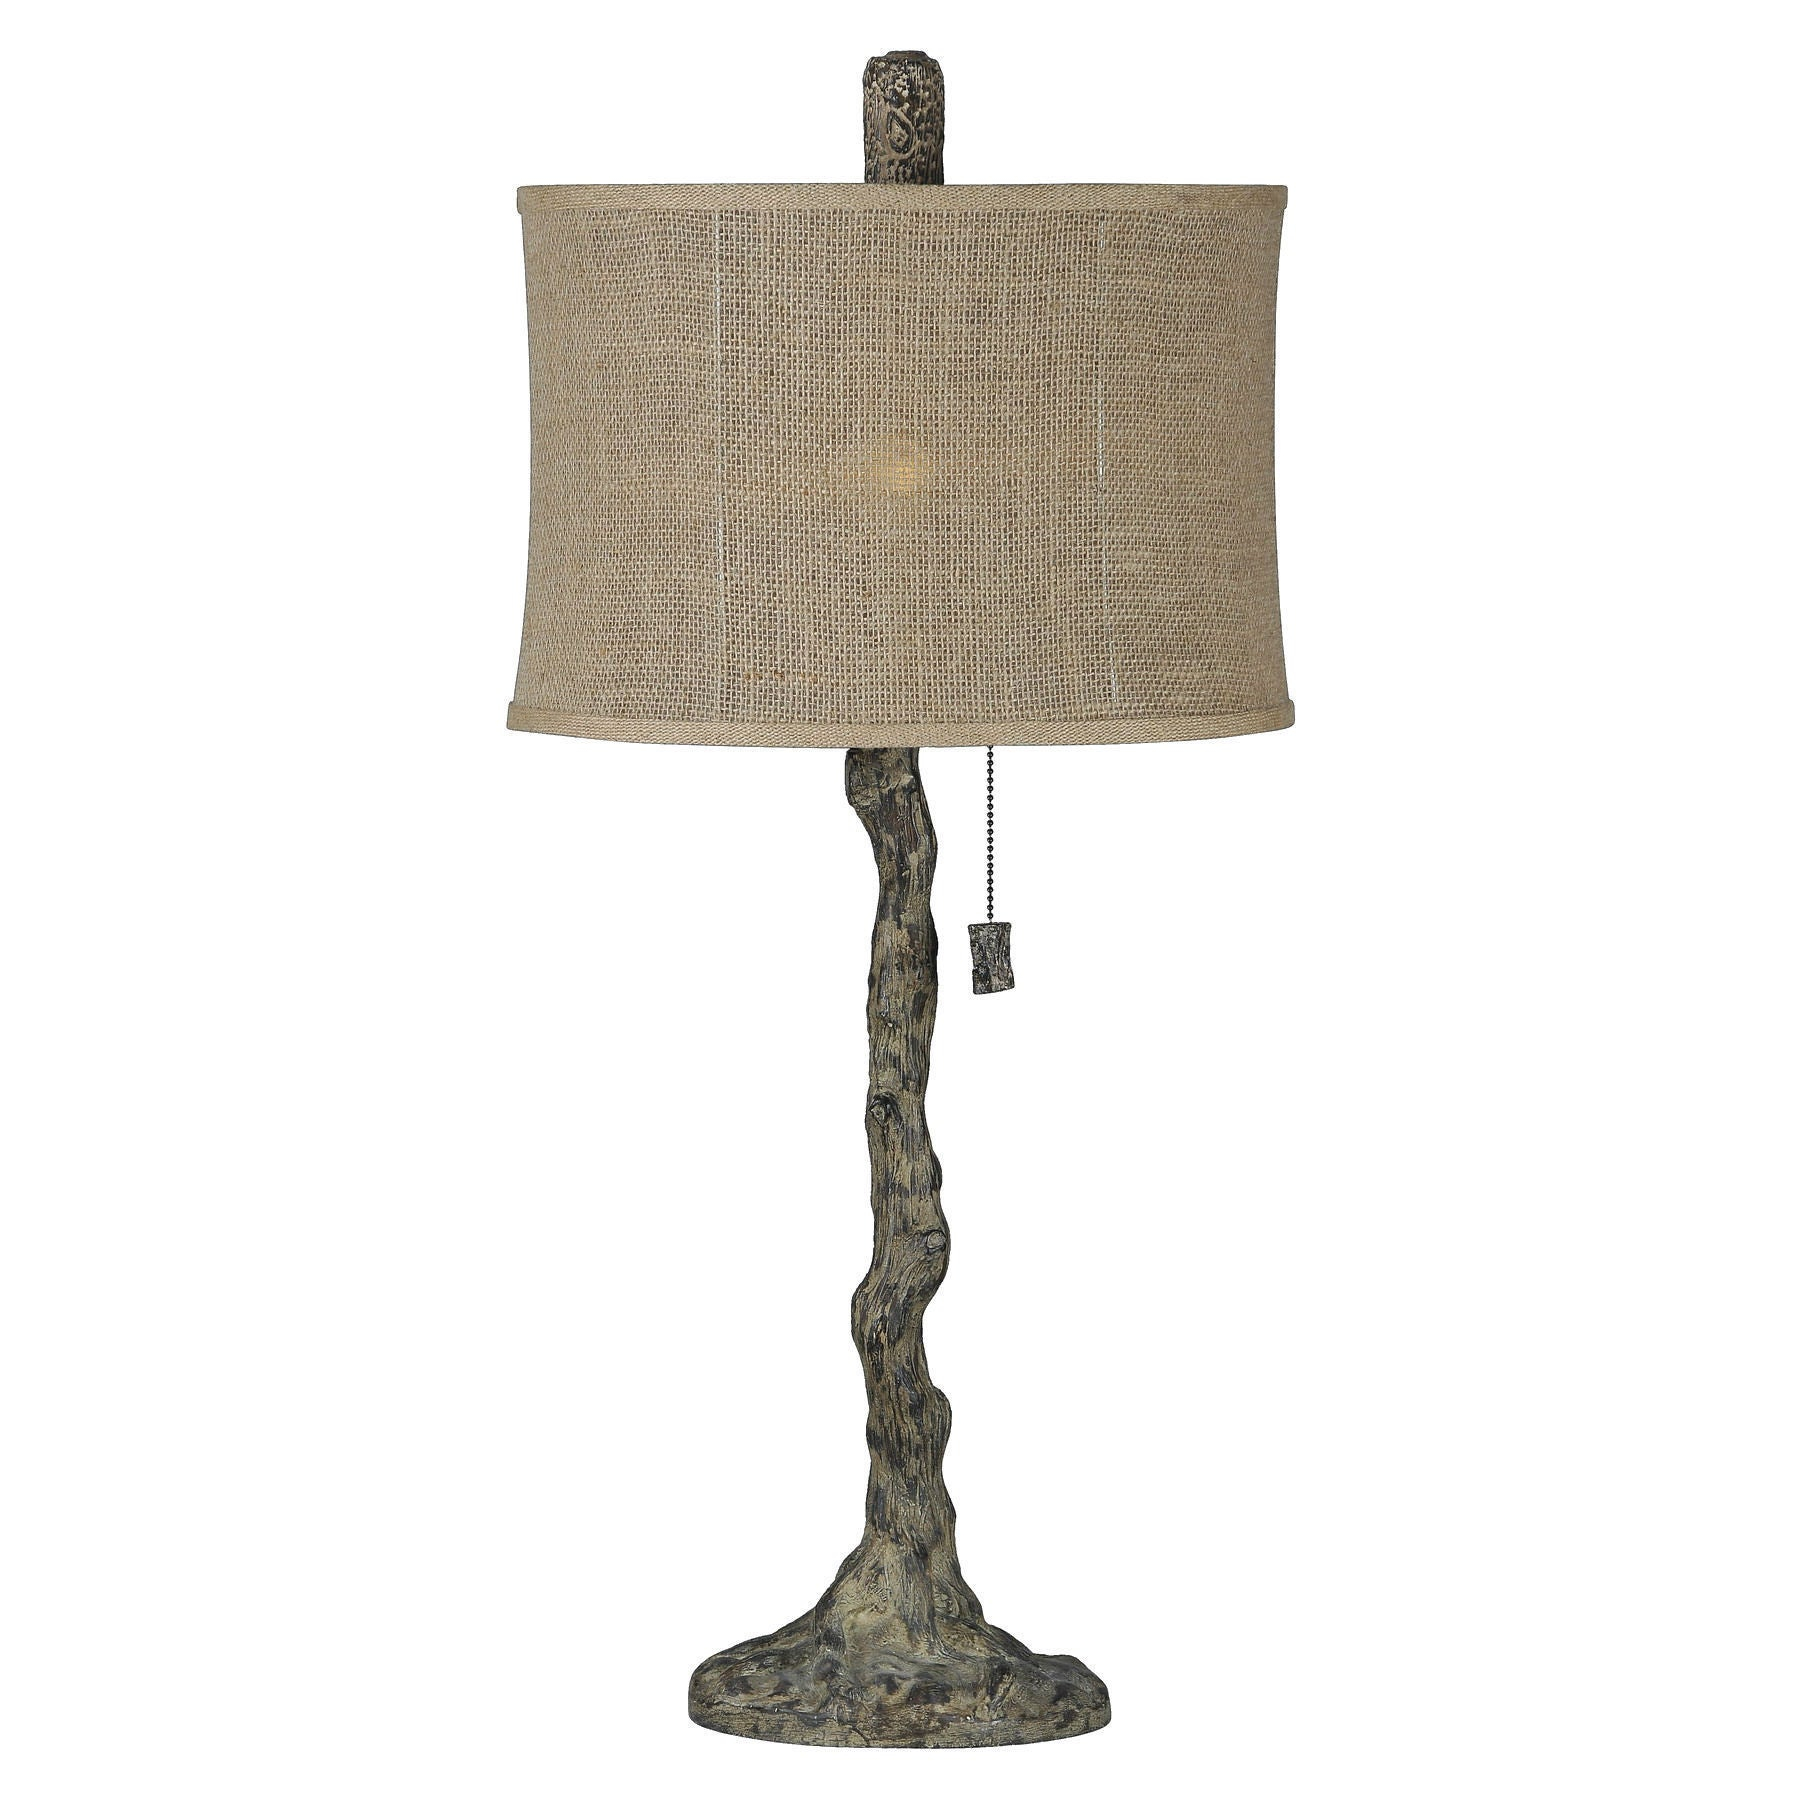 Knox Table Lamp 315 High in size 1800 X 1800